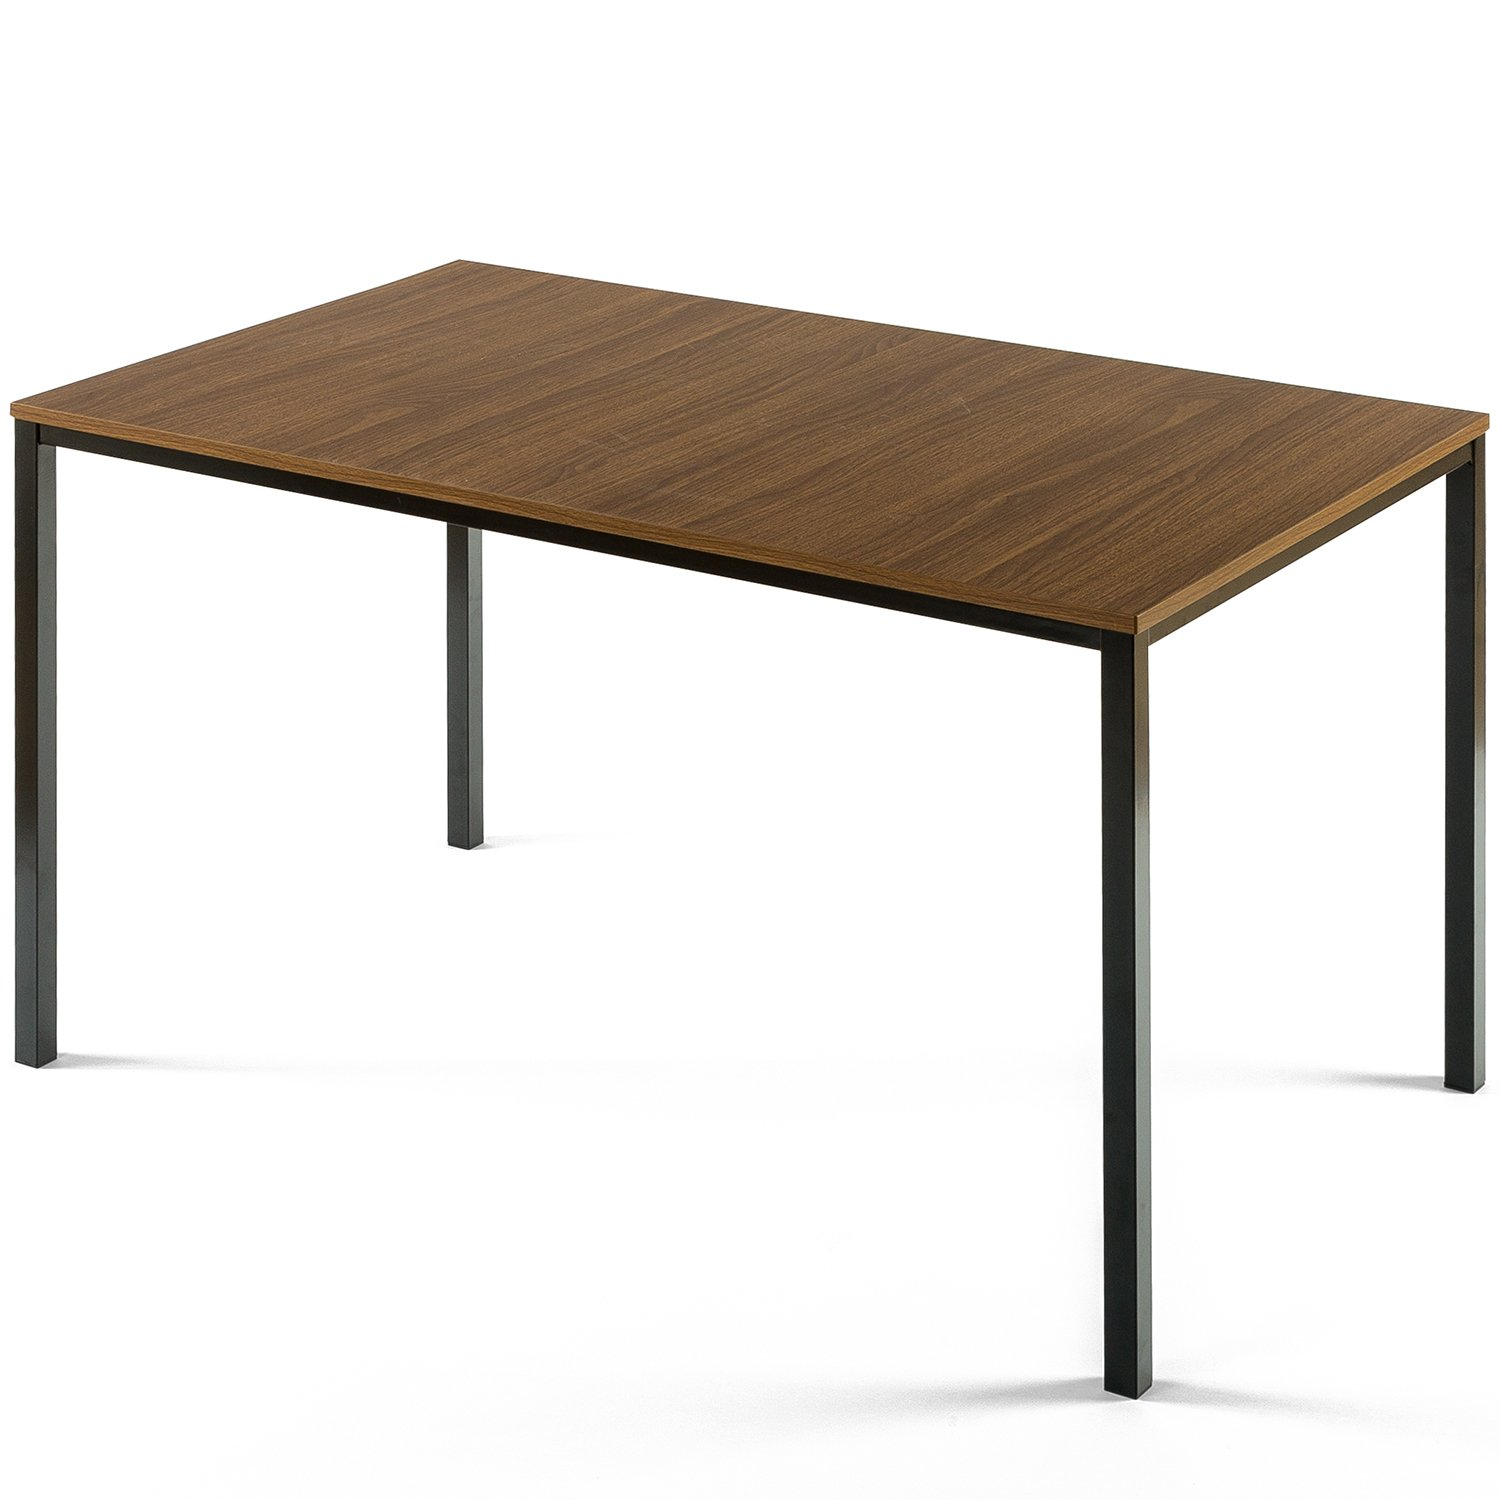 Zinus Modern Studio Collection Soho Dining Table/Office Desk/Computer Desk/Table Only, Brown by Zinus (Image #1)